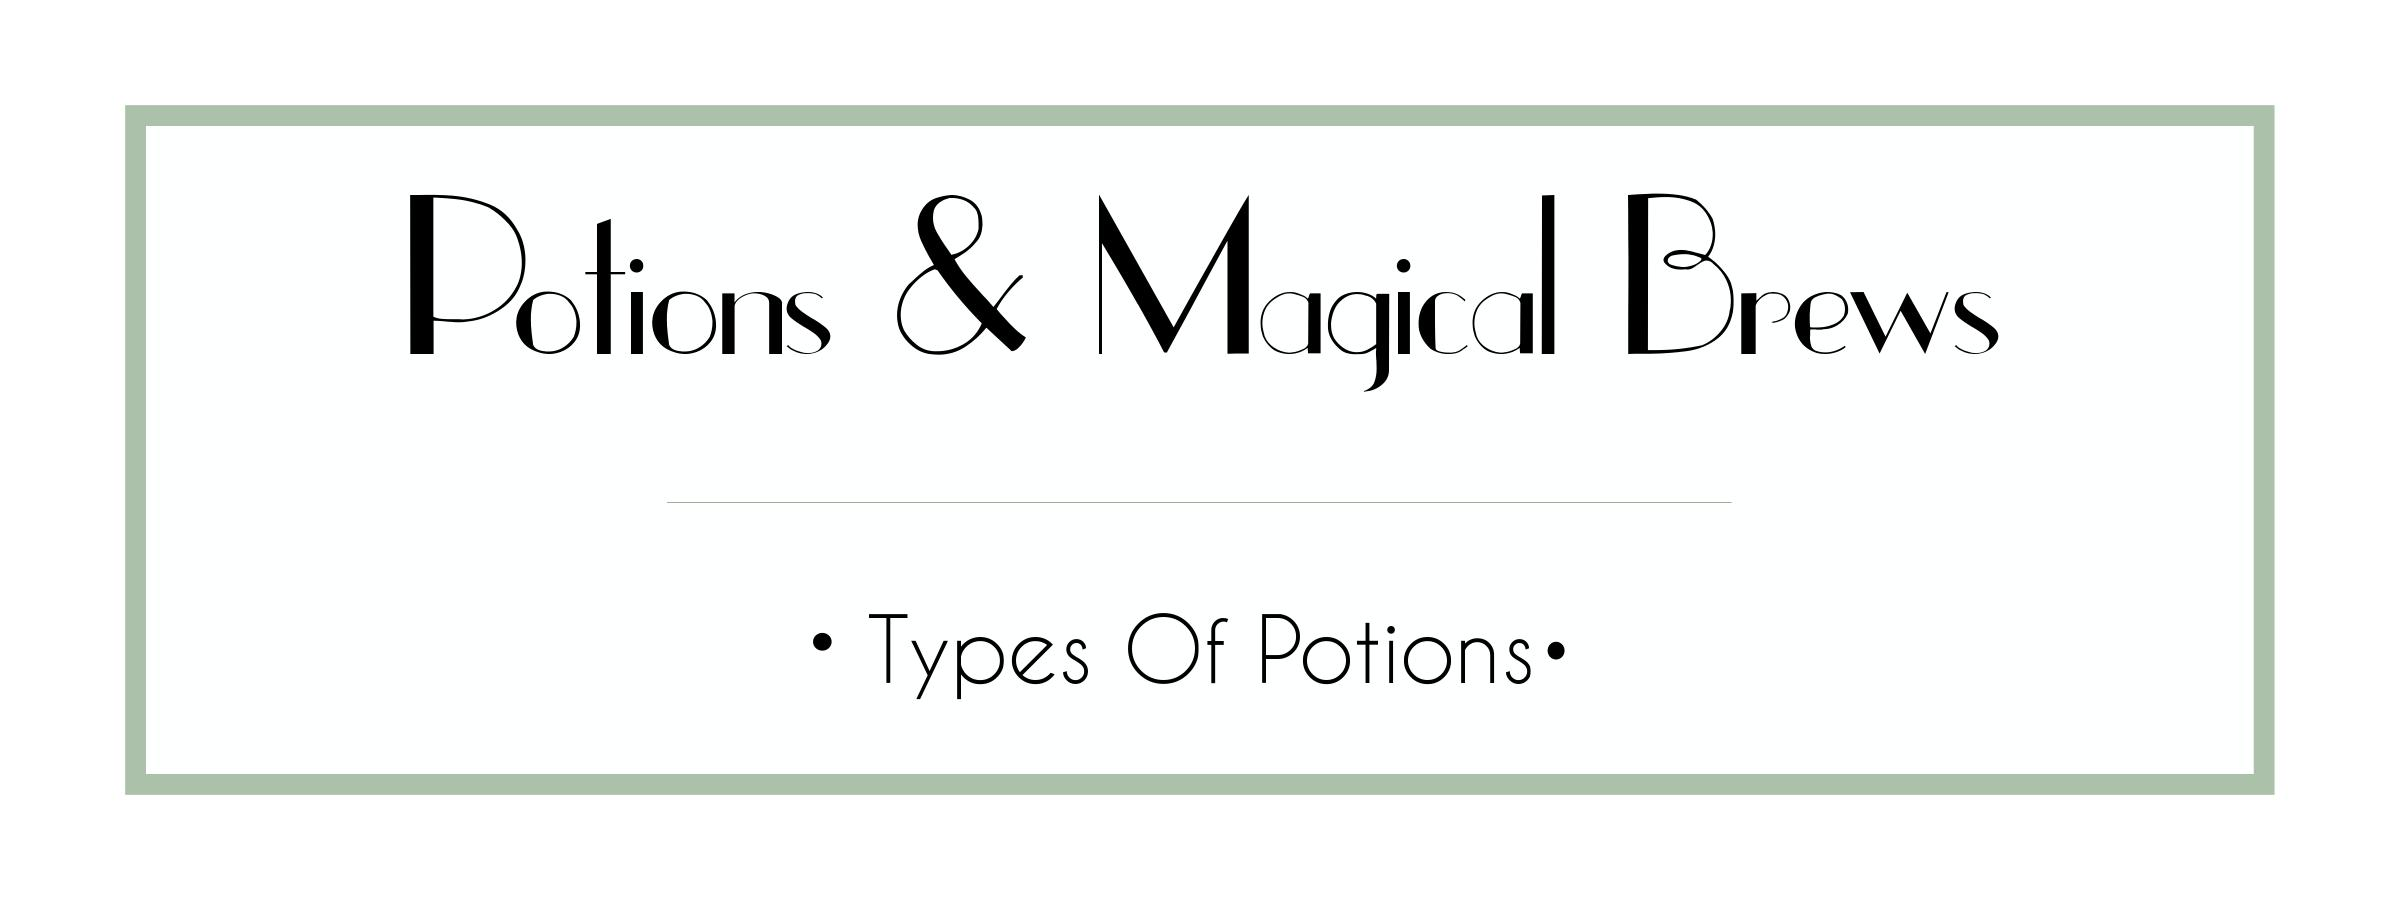 Potions & Magical Brews - Types Of Potions